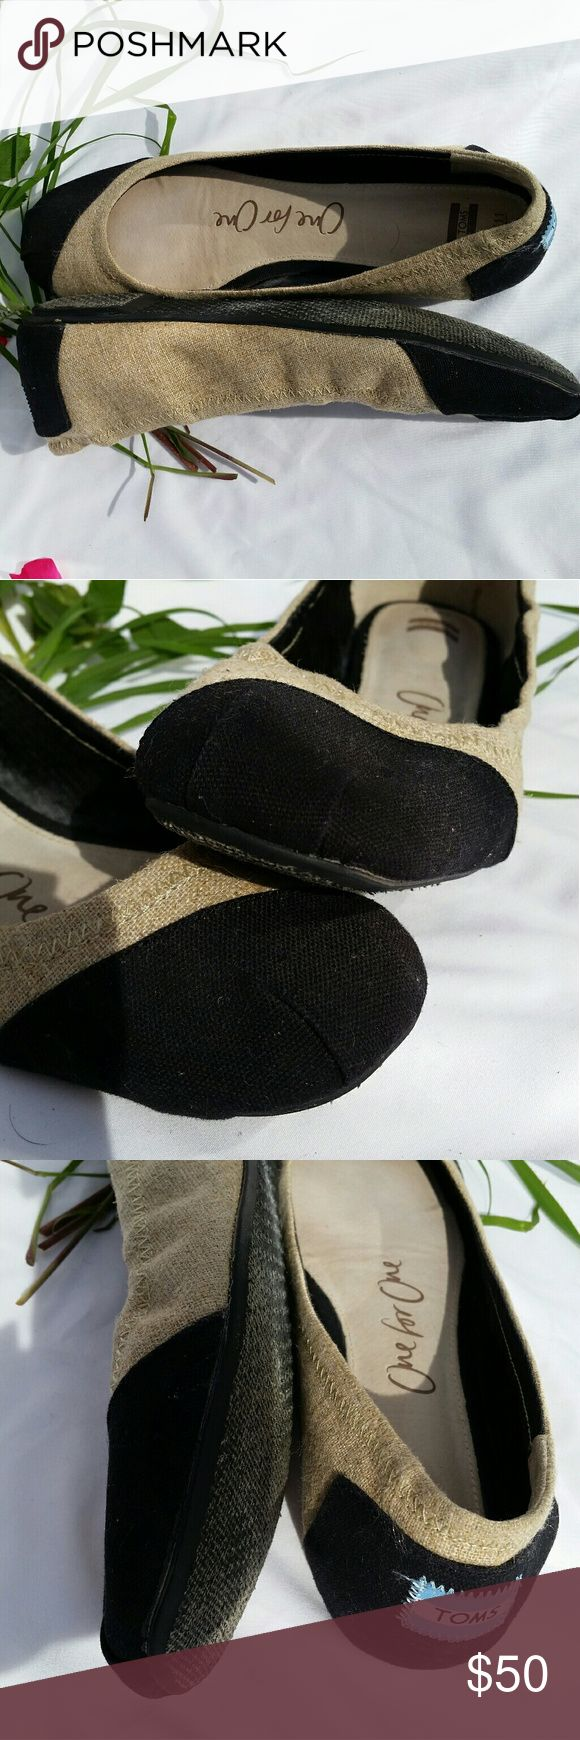 """TOM'S """"ALESSANDRA"""" BALLET FLATS BURLAP WOMEN'S TOM'S """"ALESSANDRA"""" BALLET FLATS DEFINED BLACK TOE MADE OF RUSTIC BURLAP WITH A TAN BODY RUBBER SOLE WOMEN'S SIZE 11 WORN TWICE, GREAT CONDITION Natural Burlap Trim Women's Ballet Flat Women Size 11 Burlap  upper. Elasticized collar for improved fit. Padded heel and cushioned suede insole. One-piece outsole for flexibility and durability. Fabric upper and lining/rubber and textile sole. By TOMS; imported. Pleated square toe. Low-cut vamp visually…"""